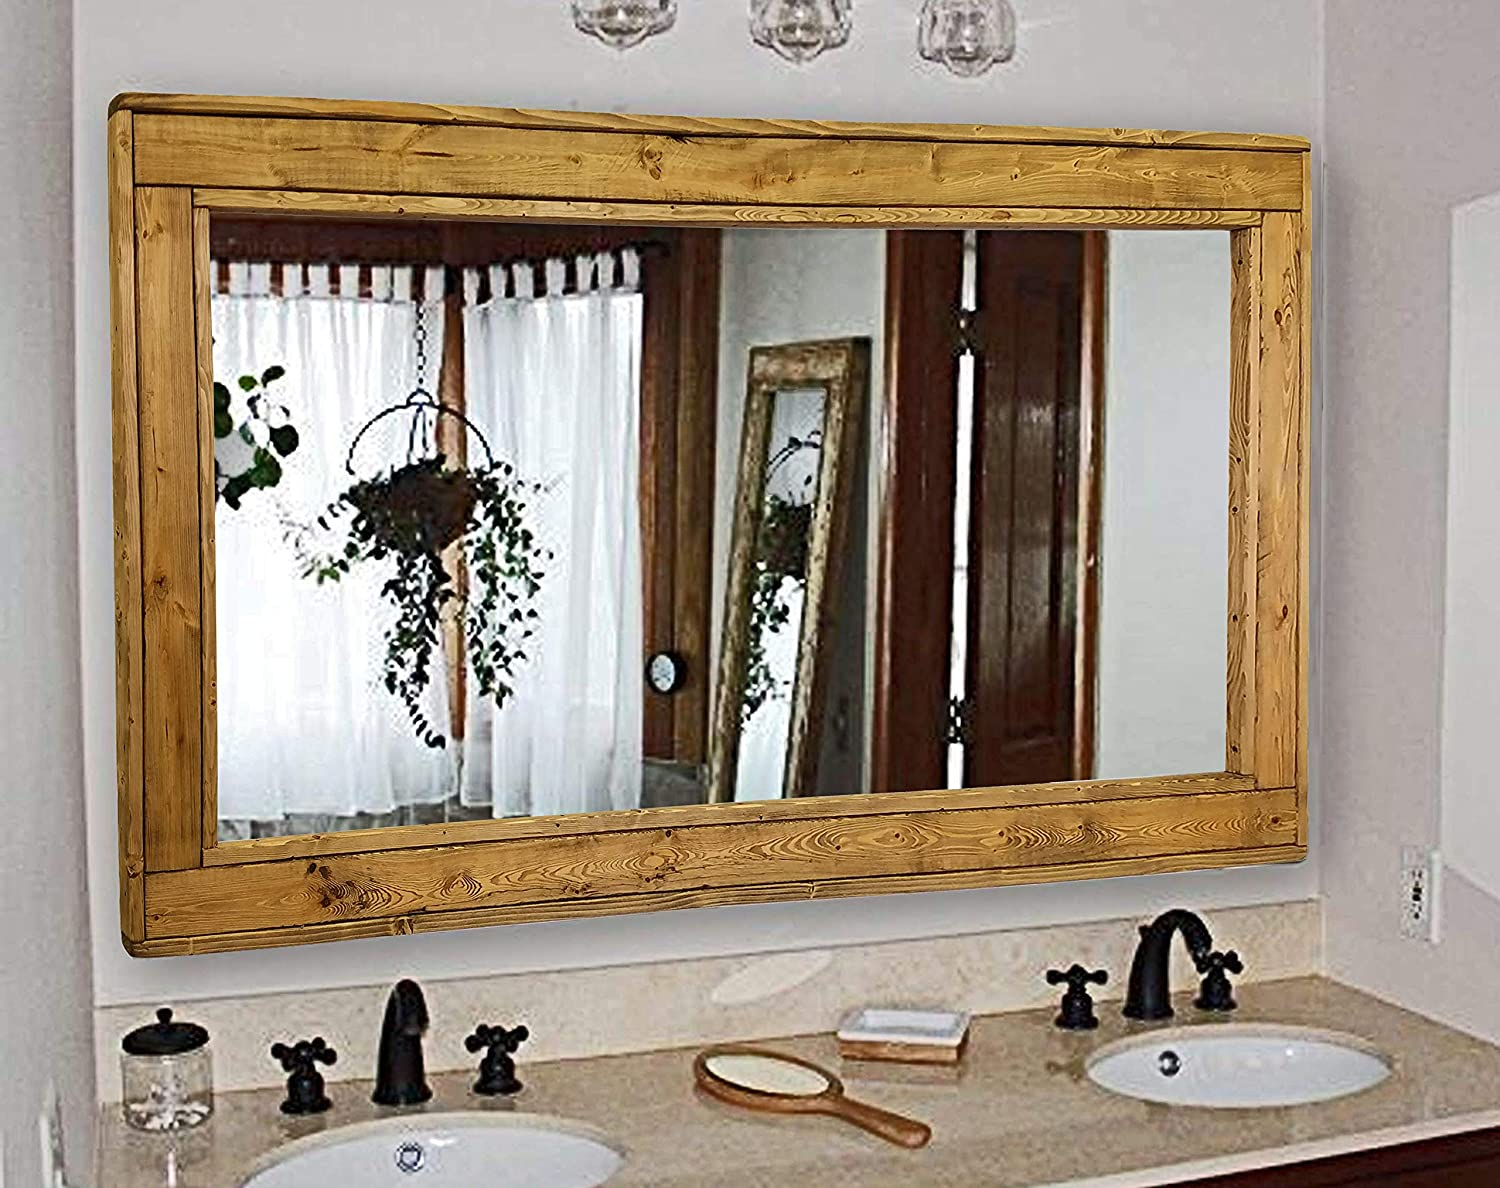 herringbone large mirror double vanity mirror available in 20 colors shown in driftwood reclaimed wooden framed mirror ex large wall mirror